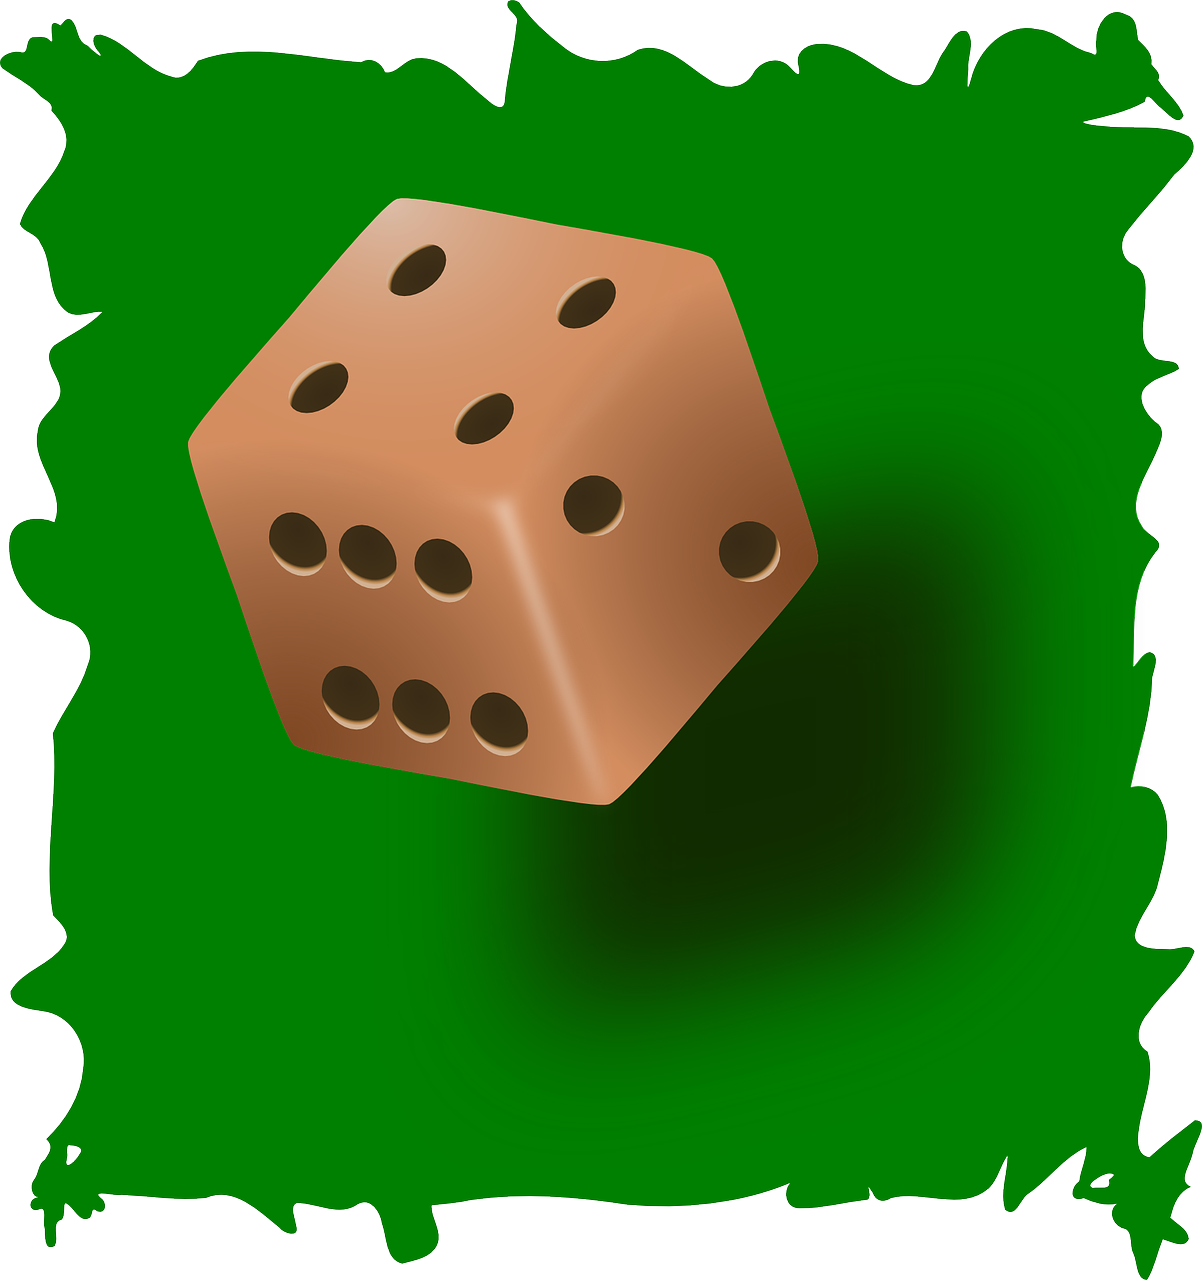 dice roll game free photo